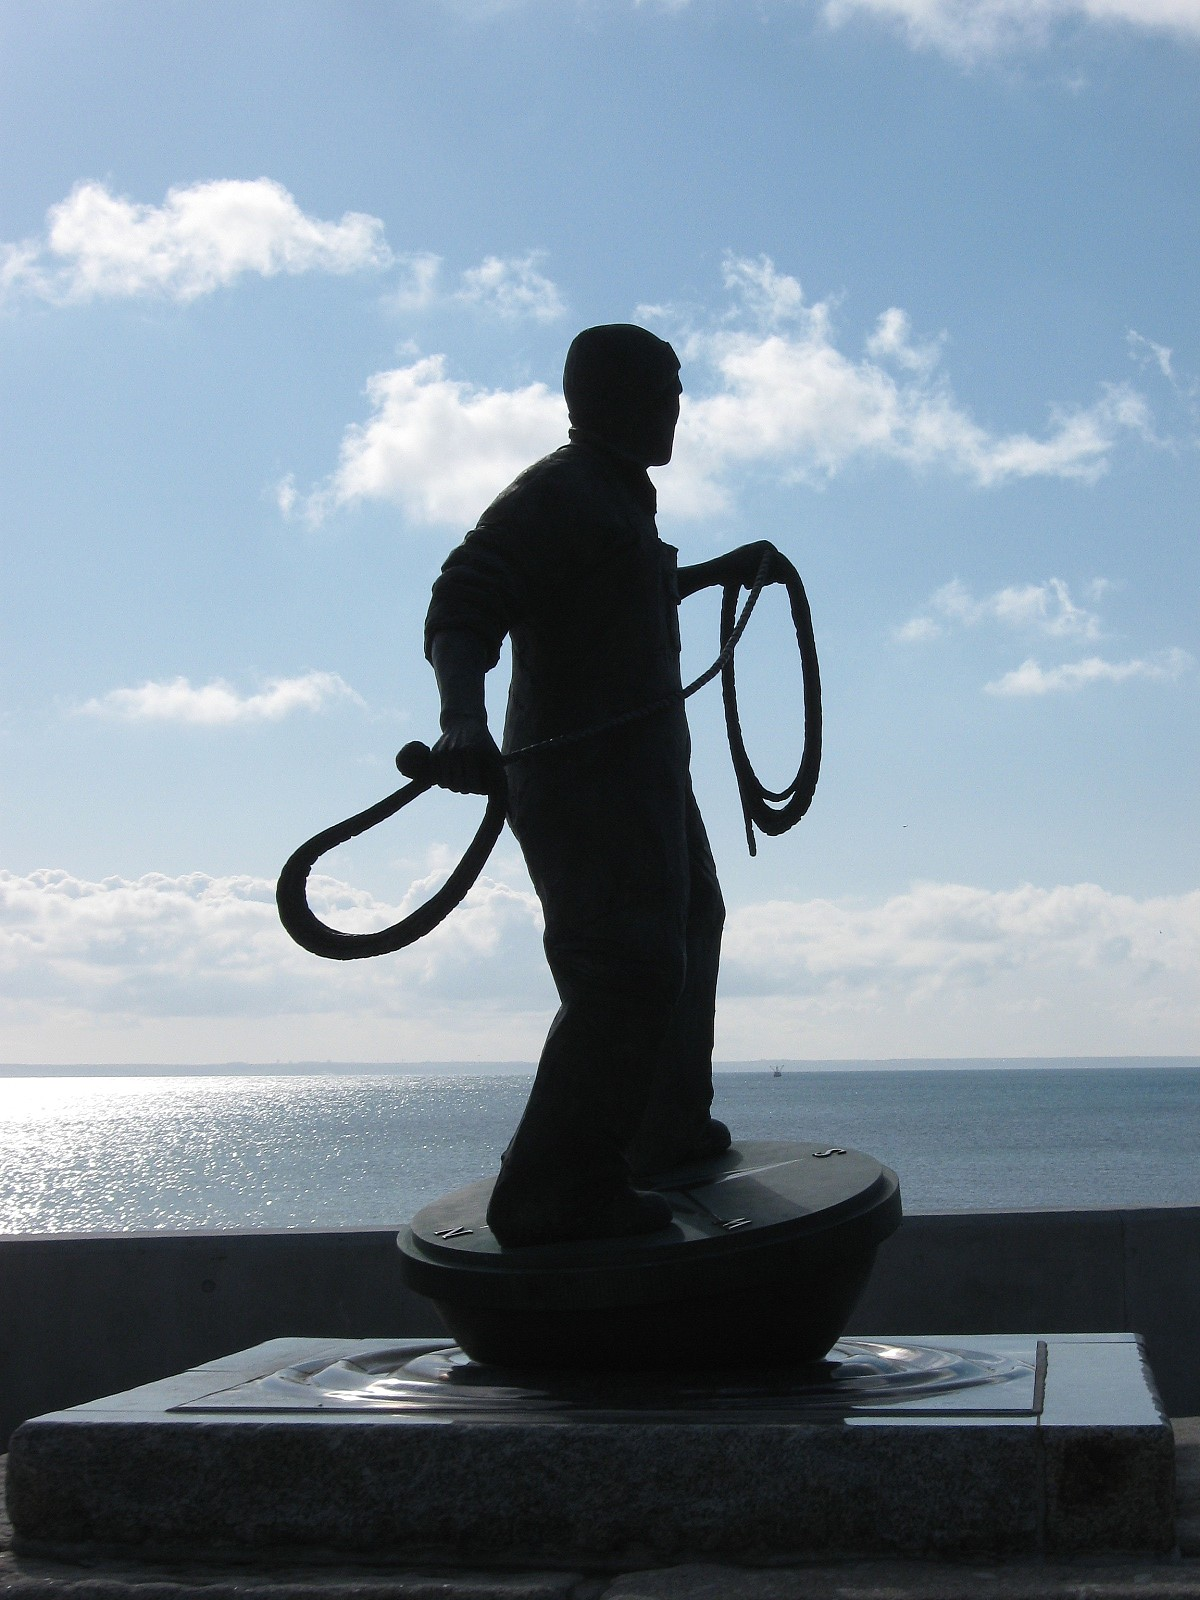 Newlyn Statue Fisherman at Work